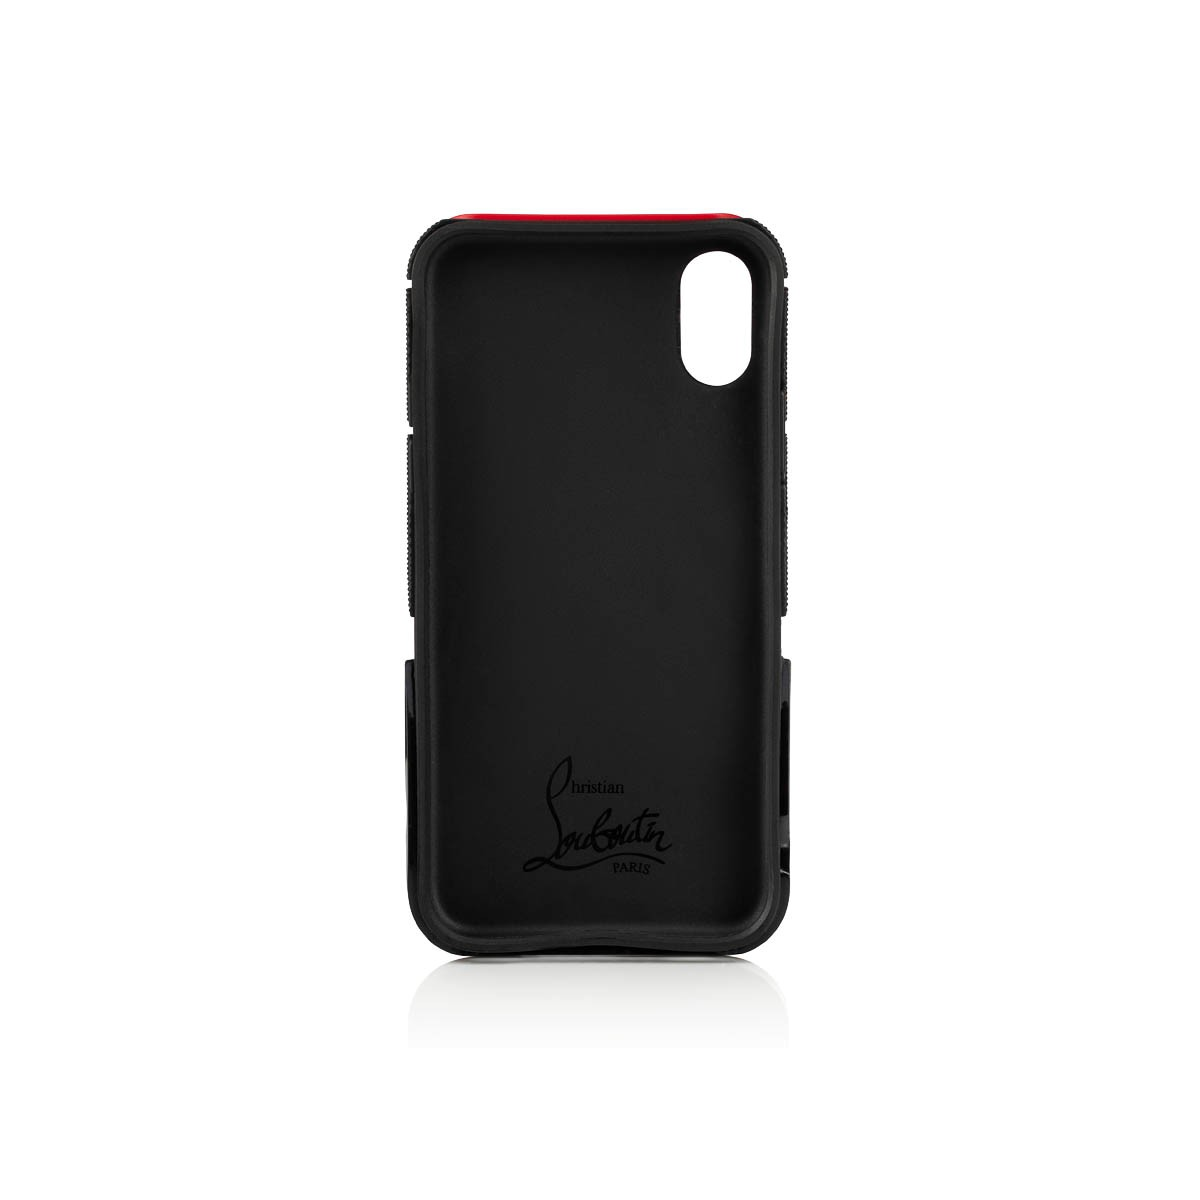 スモールレザーグッズ - Red Runner Case Iphone X/xs - Christian Louboutin